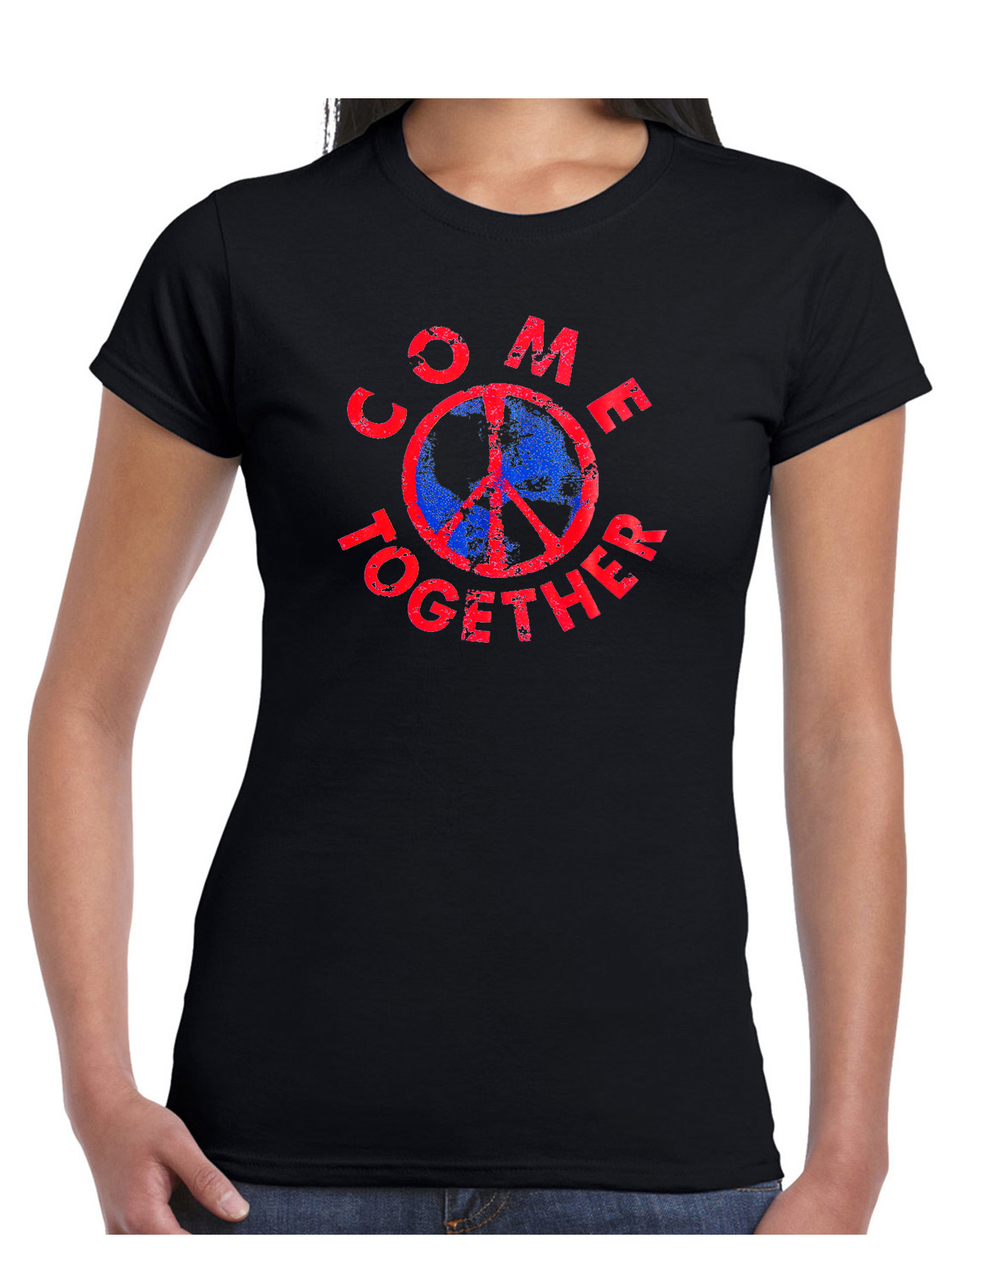 Come Together Peace T-Shirt